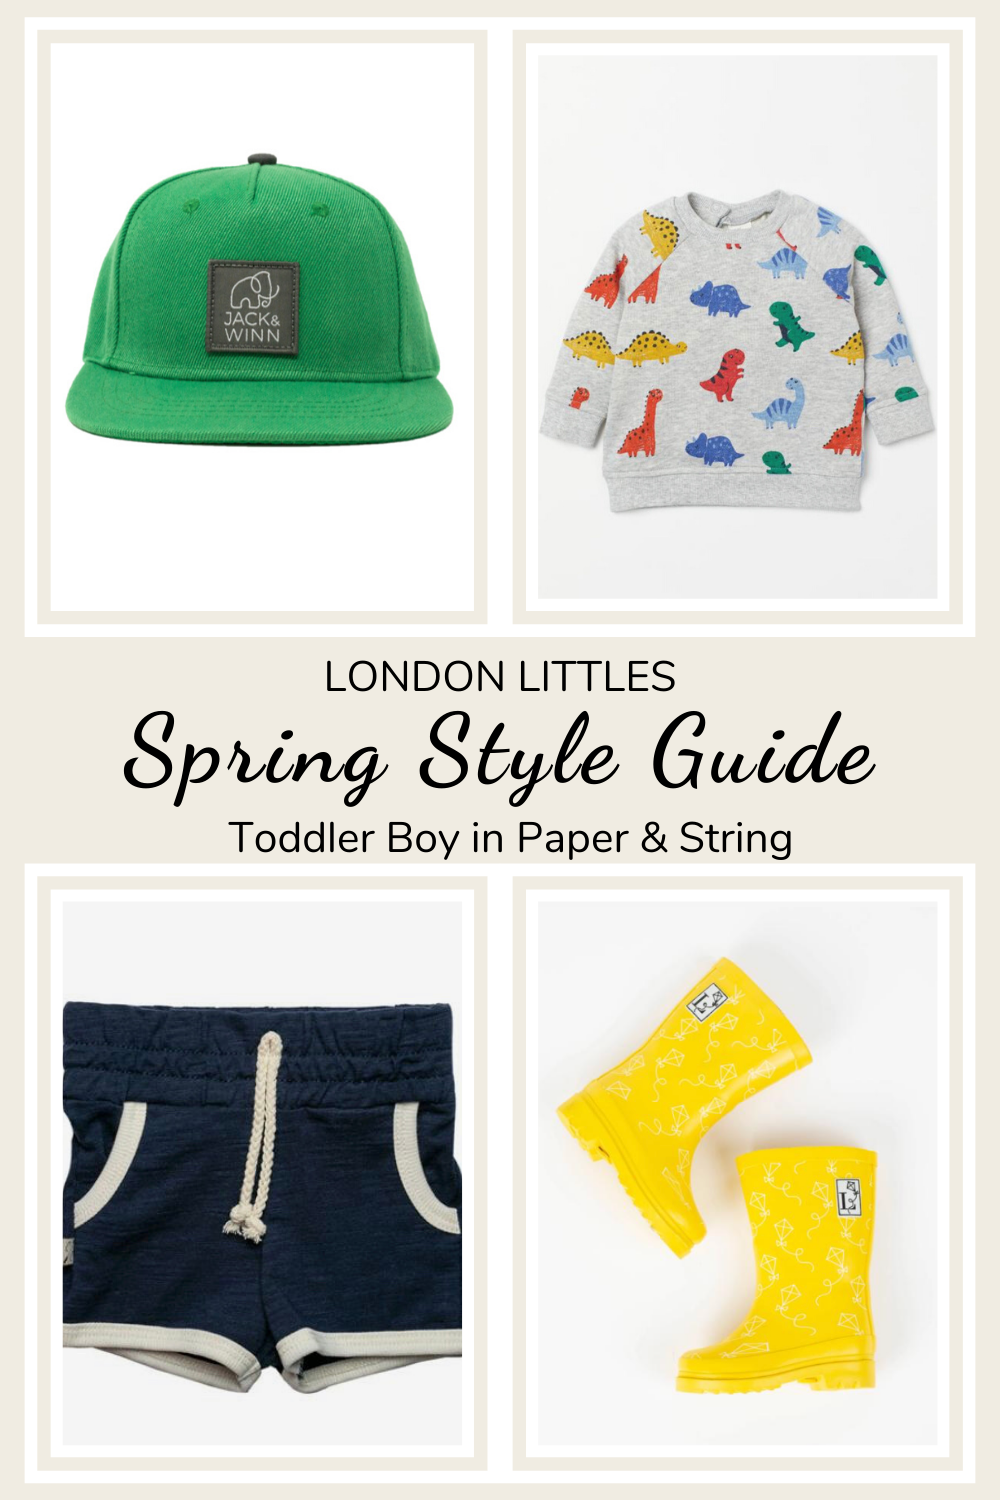 Spring Style Guide Toddler boy outfit with rain boots and hat and shorts